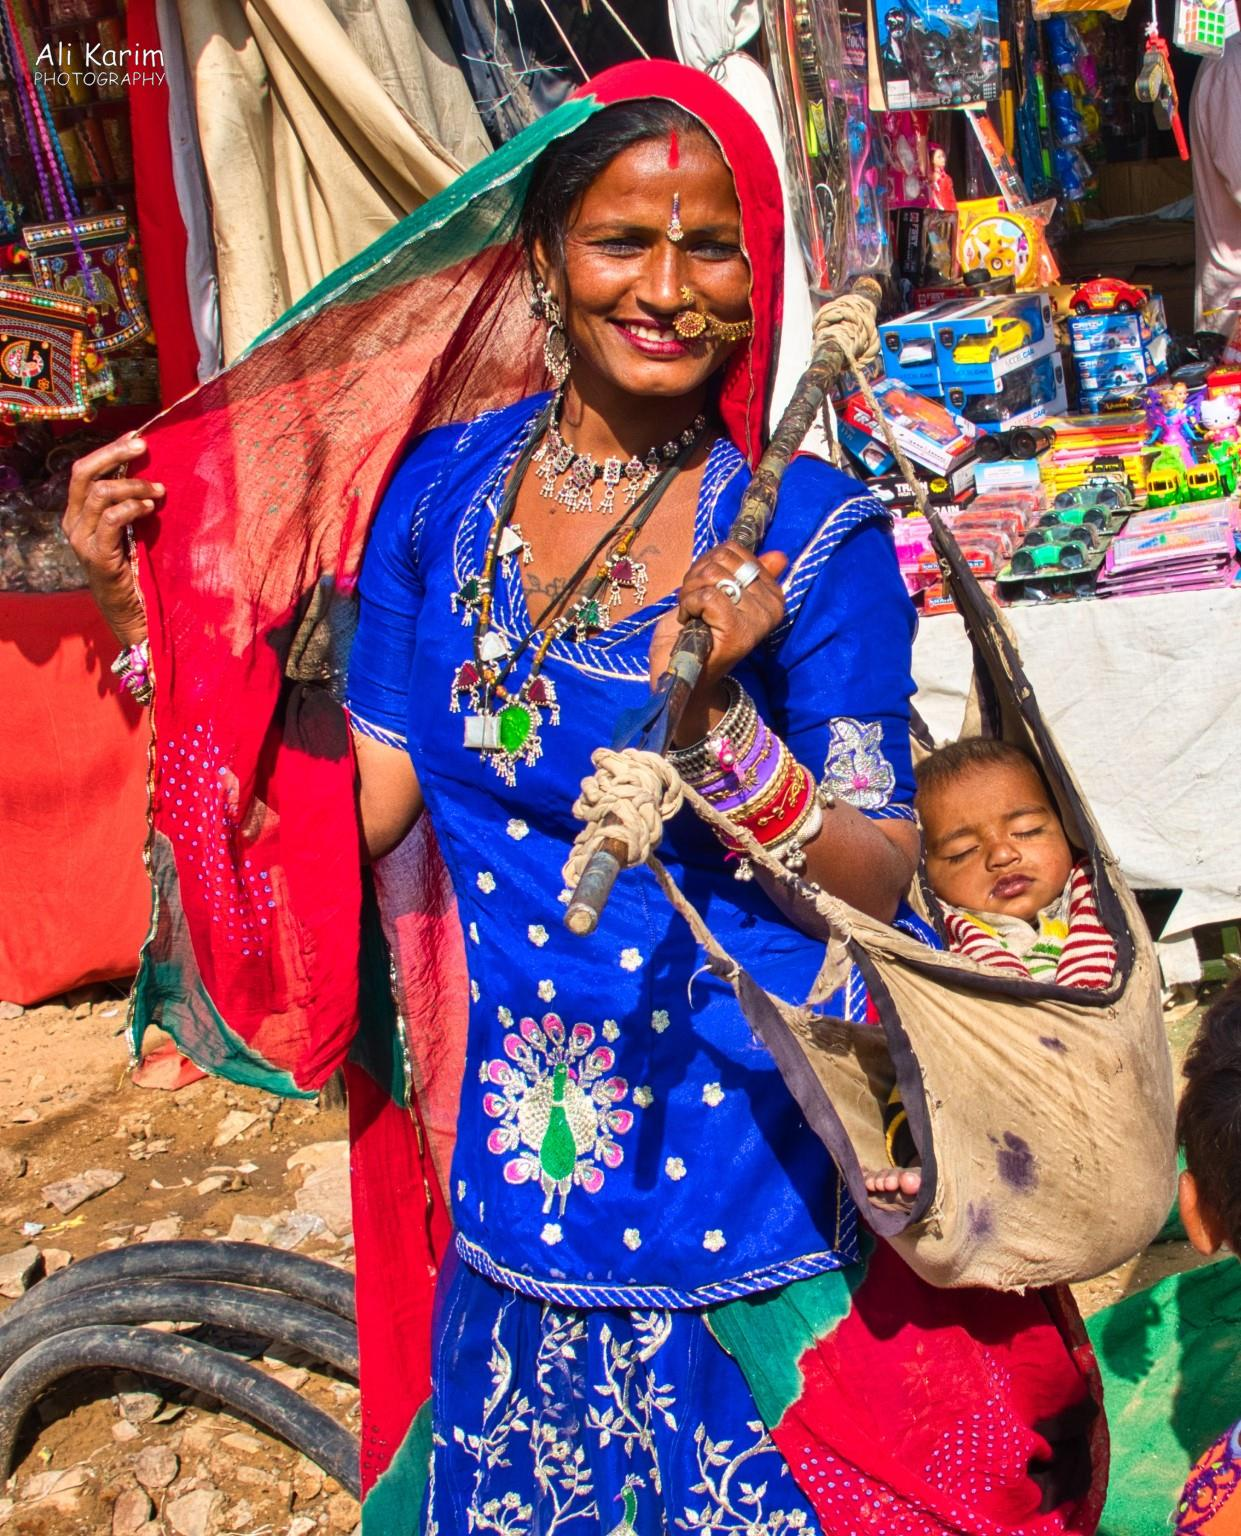 Pushkar, Rajasthan Tribal woman with her baby; interesting way to carry a baby around